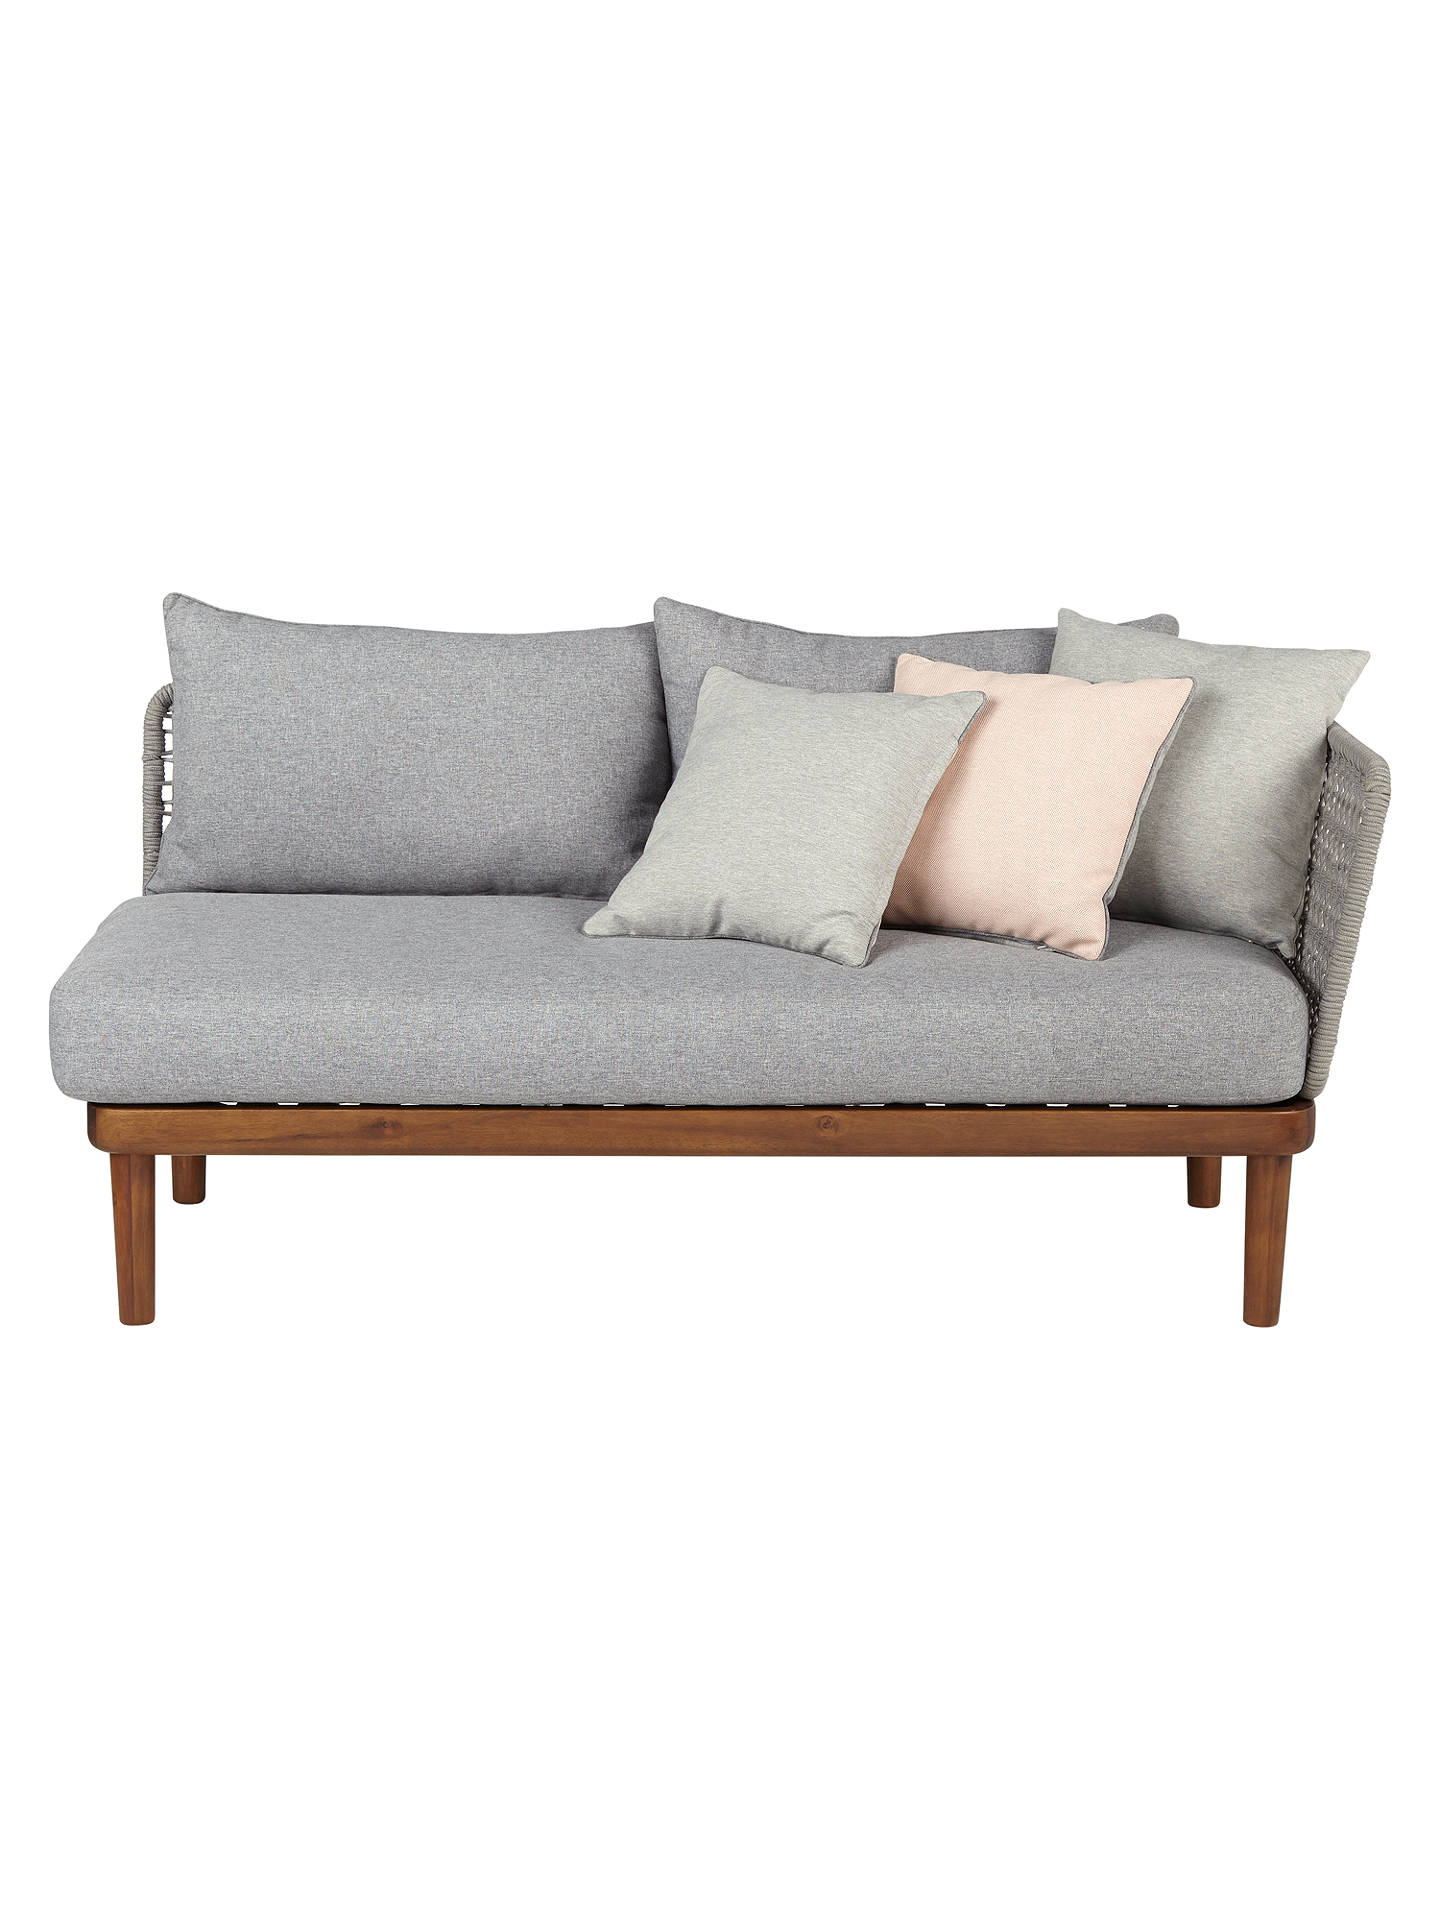 Design Project By John Lewis No 096 Lounging One Arm Sofa Fsc Certified